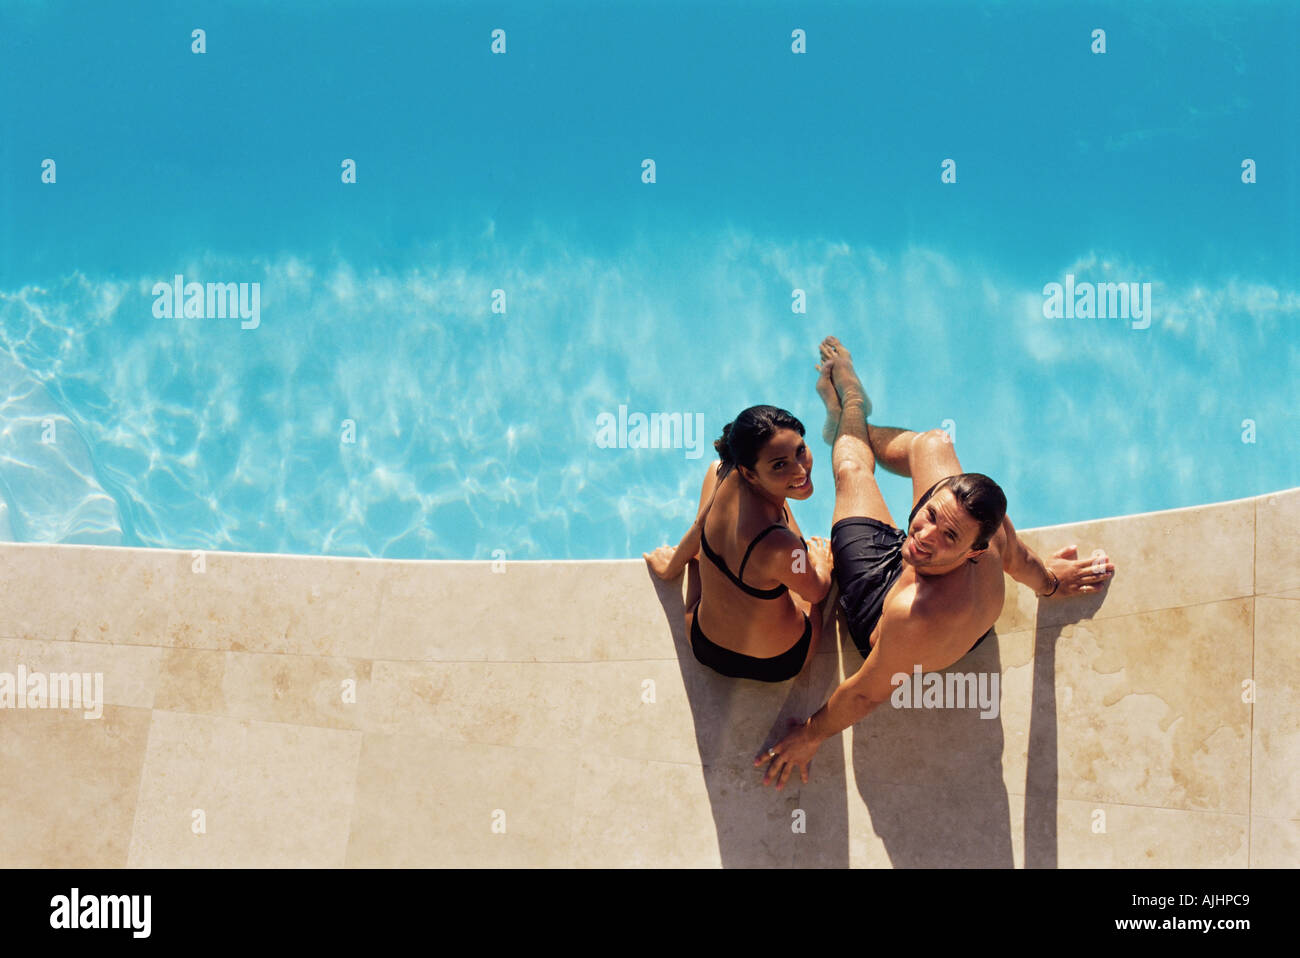 Couple sitting on the edge of swimming pool - Stock Image